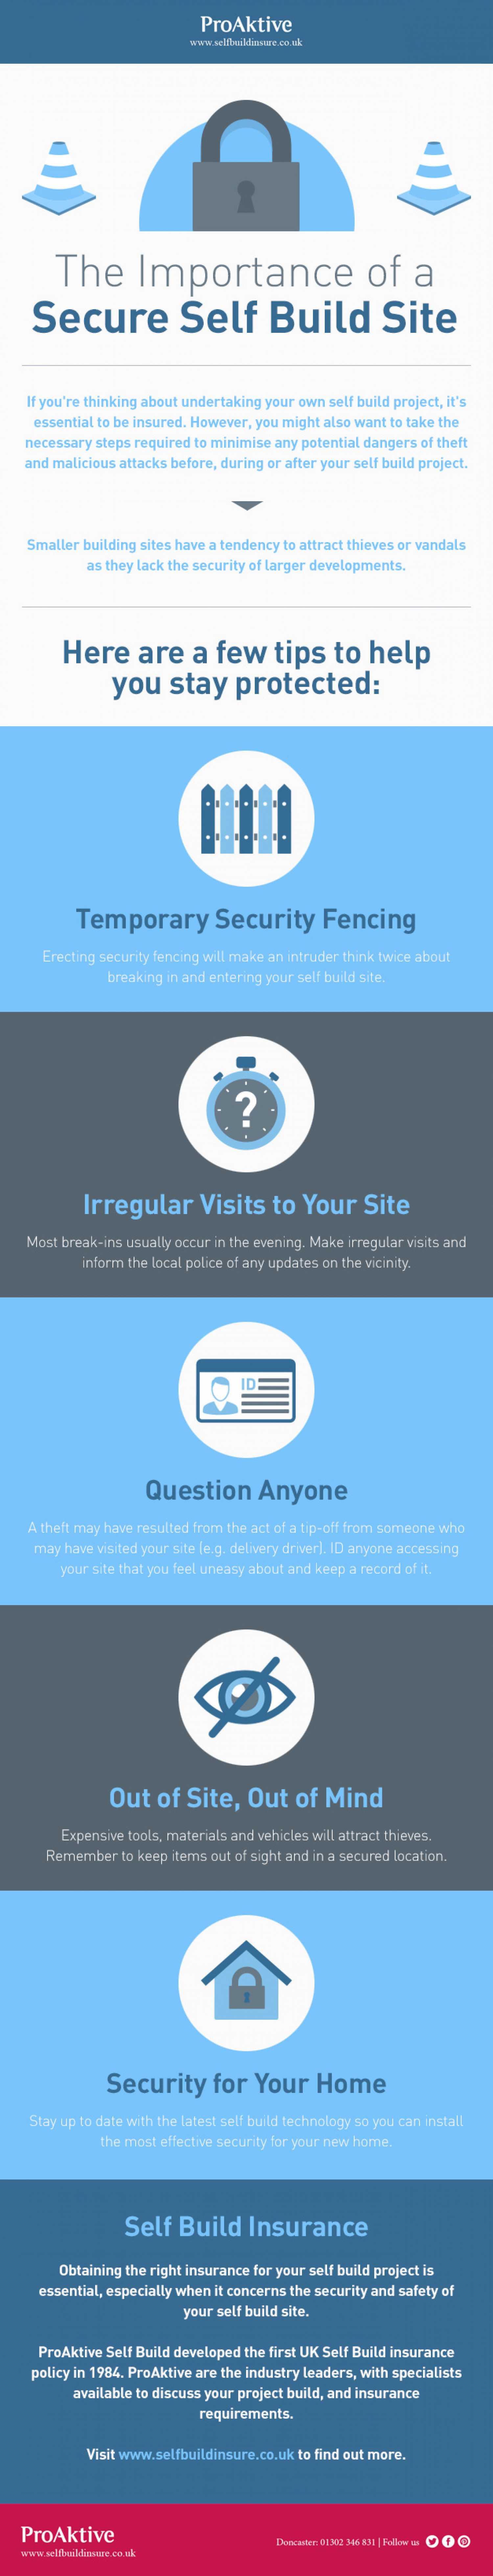 The Importance of a Secure Self Build Site Infographic